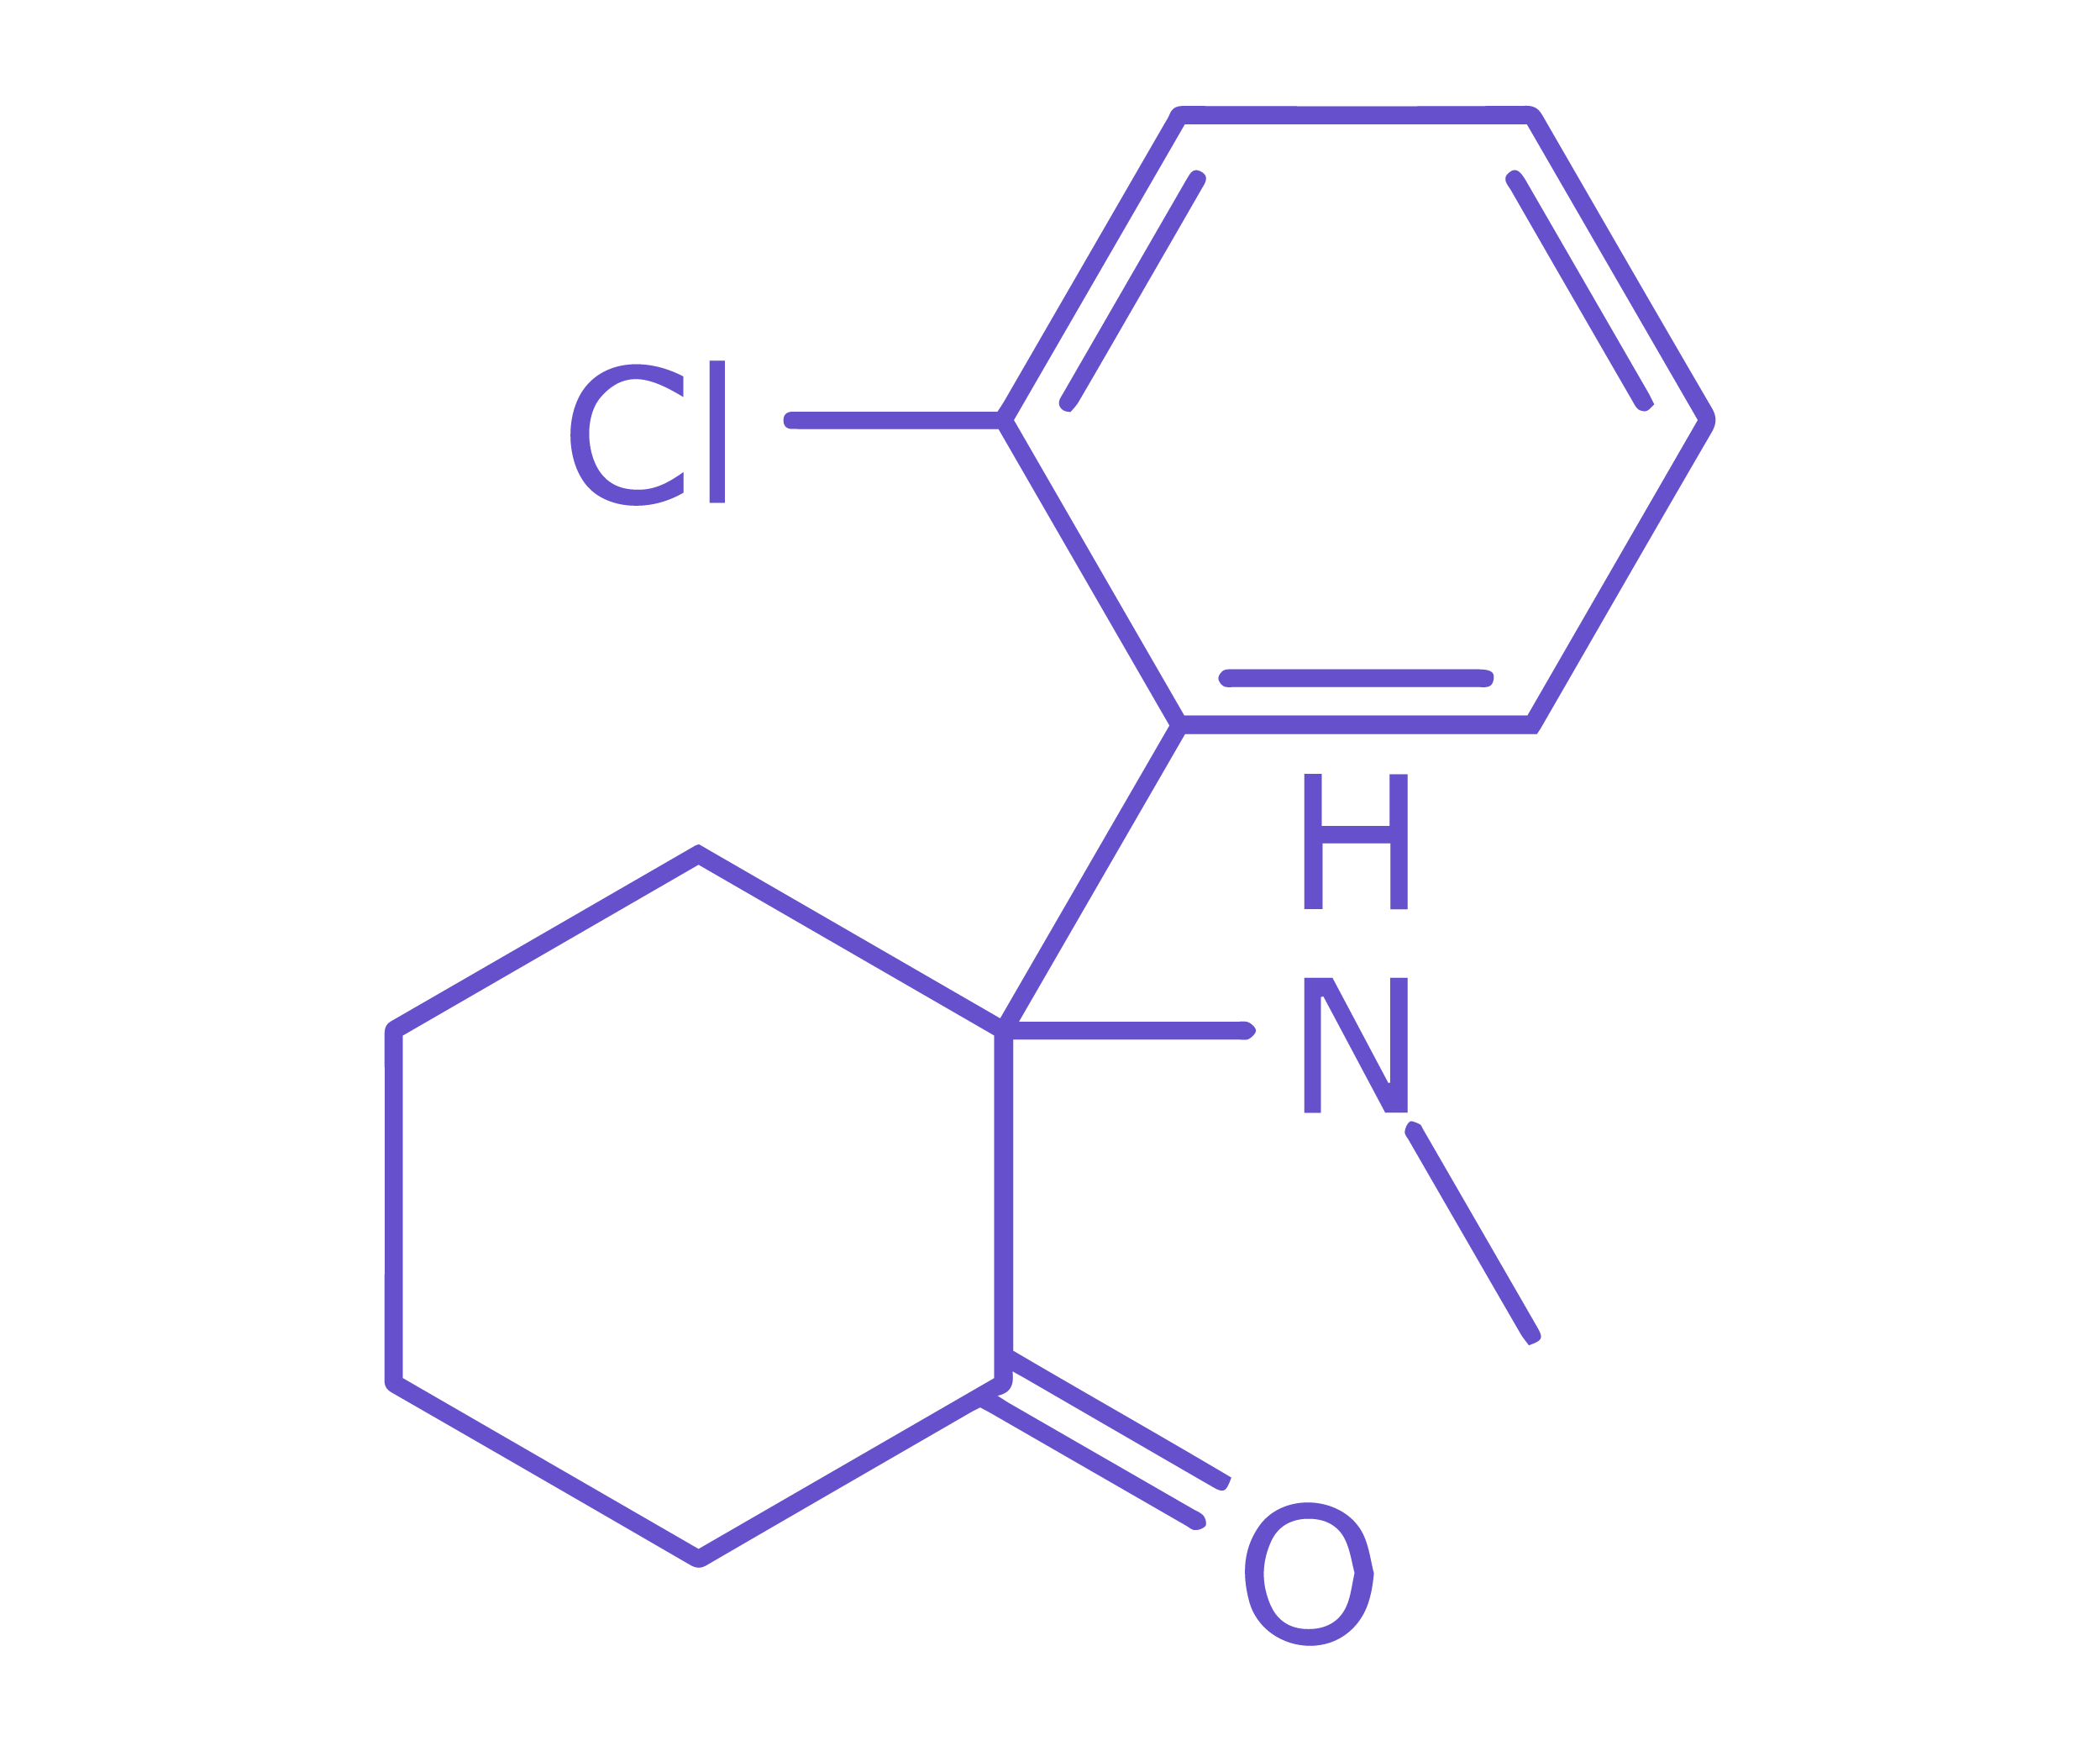 Ketamine is a general anesthetic that was first synthesized in 1962 and is used most commonly in veterinary practice as an animal tranquilizer.